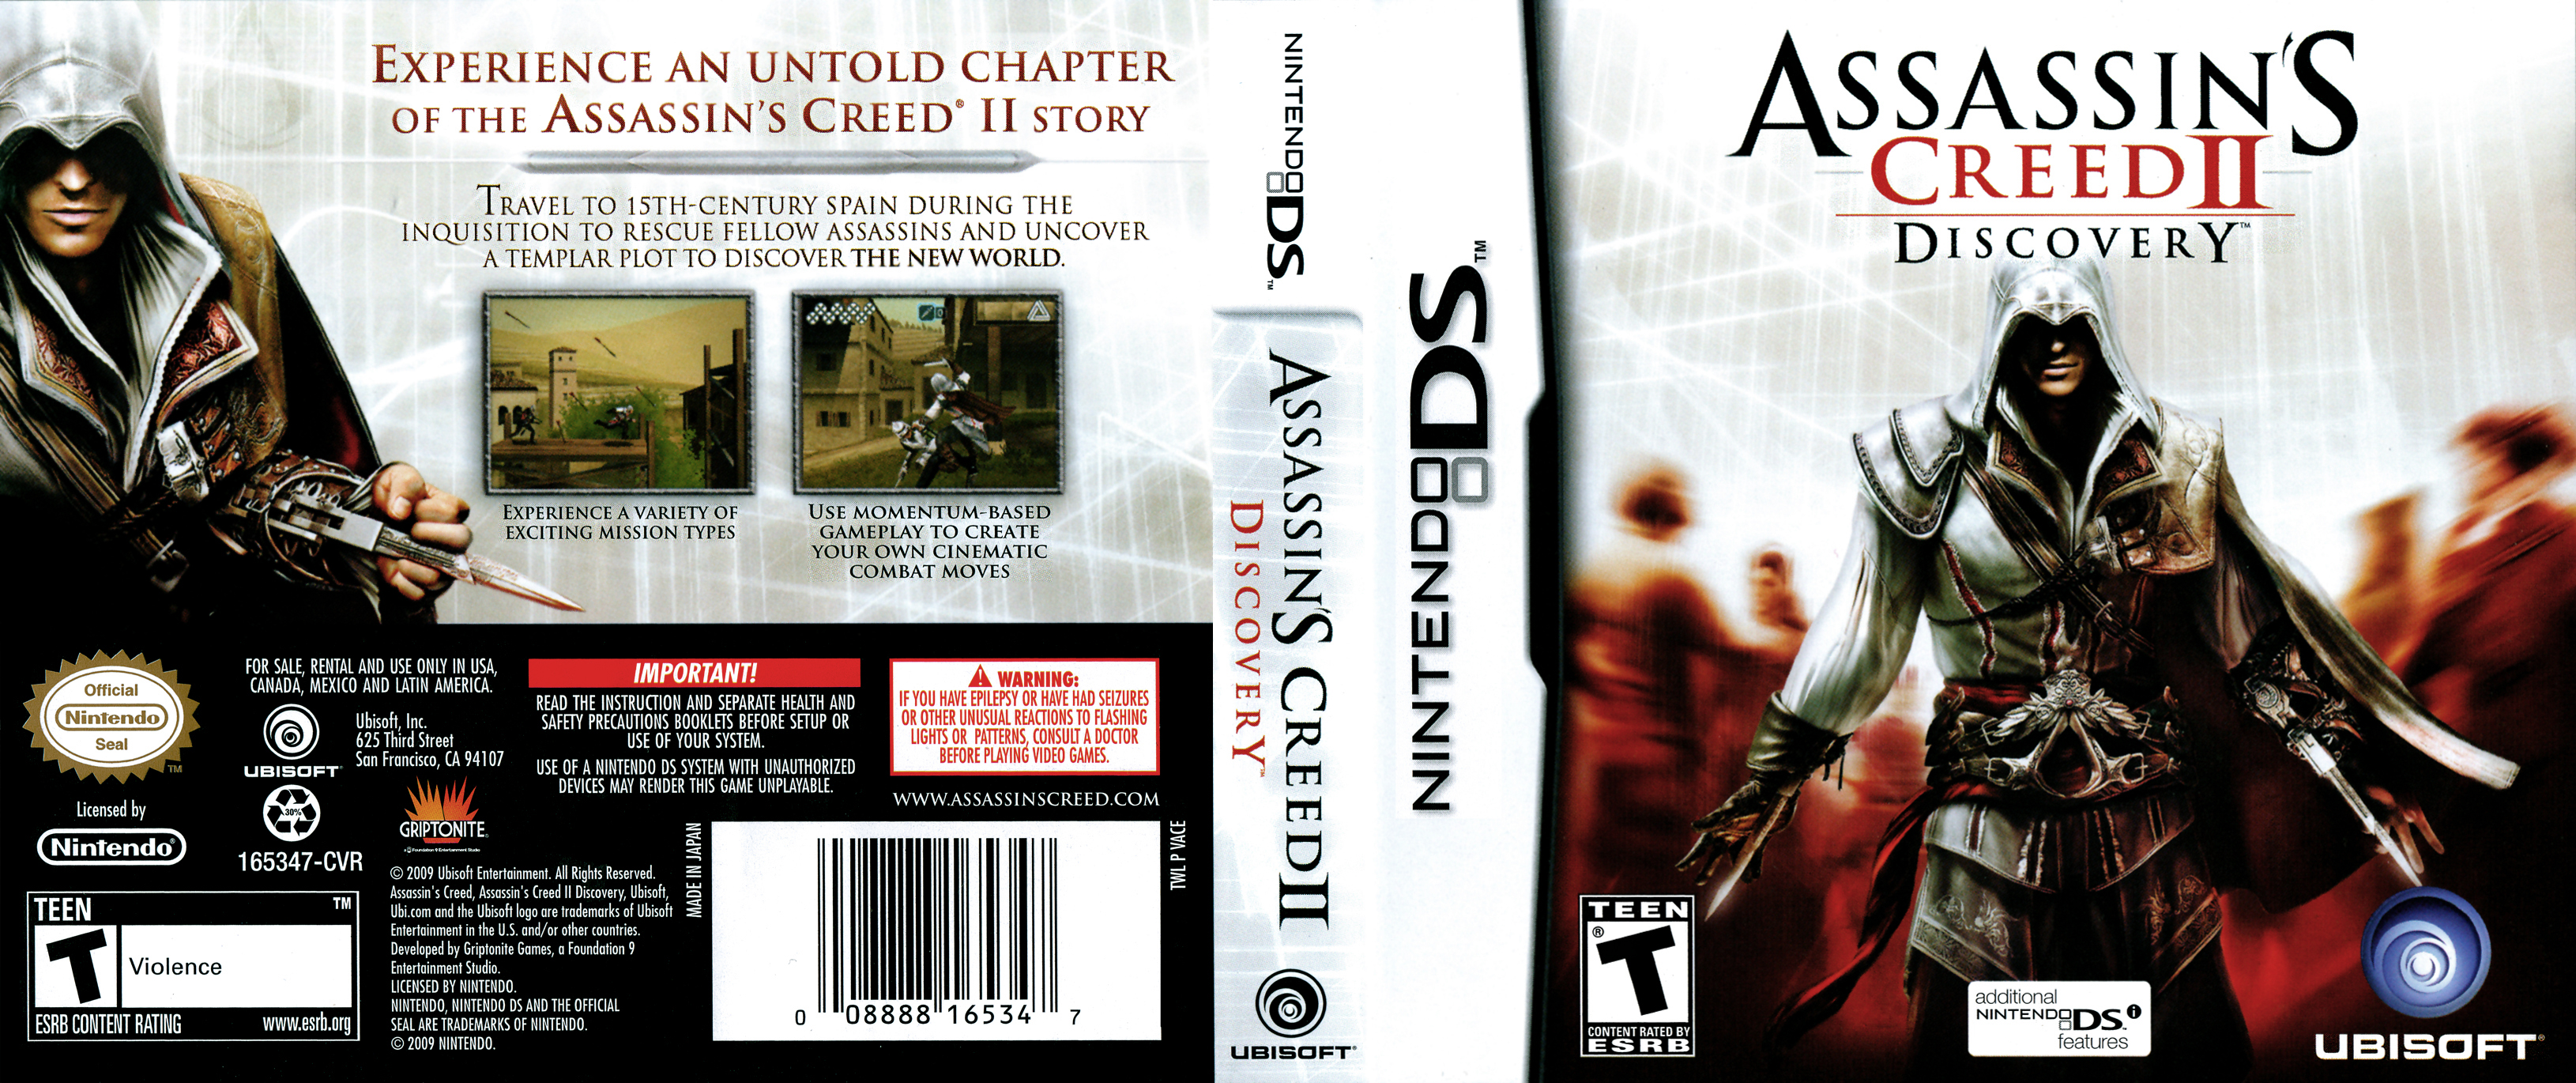 Assassins Creed Ii Discovery Nintendo Ds Covers Cover Century